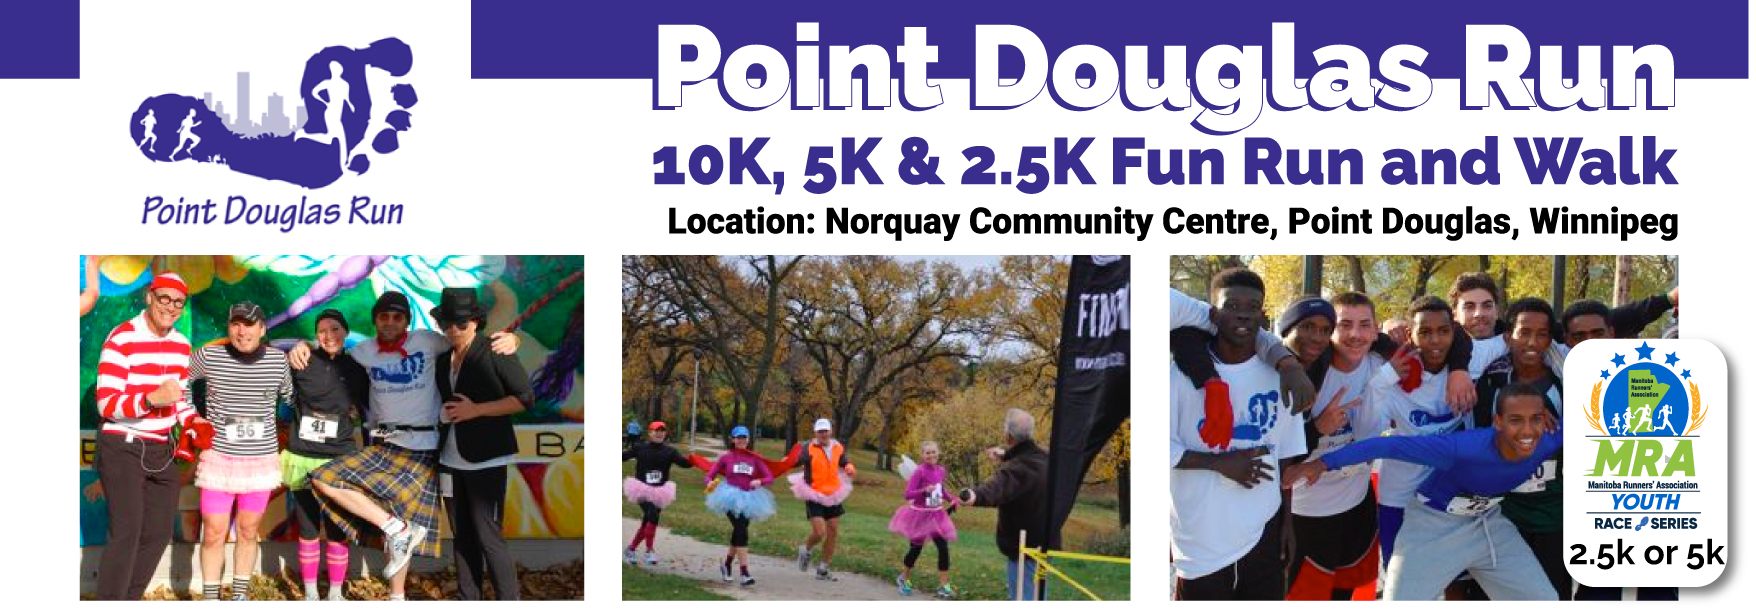 Point Douglas Run  **VIRTUAL EVENT SEPTEMBER 12-OCTOBER 17**